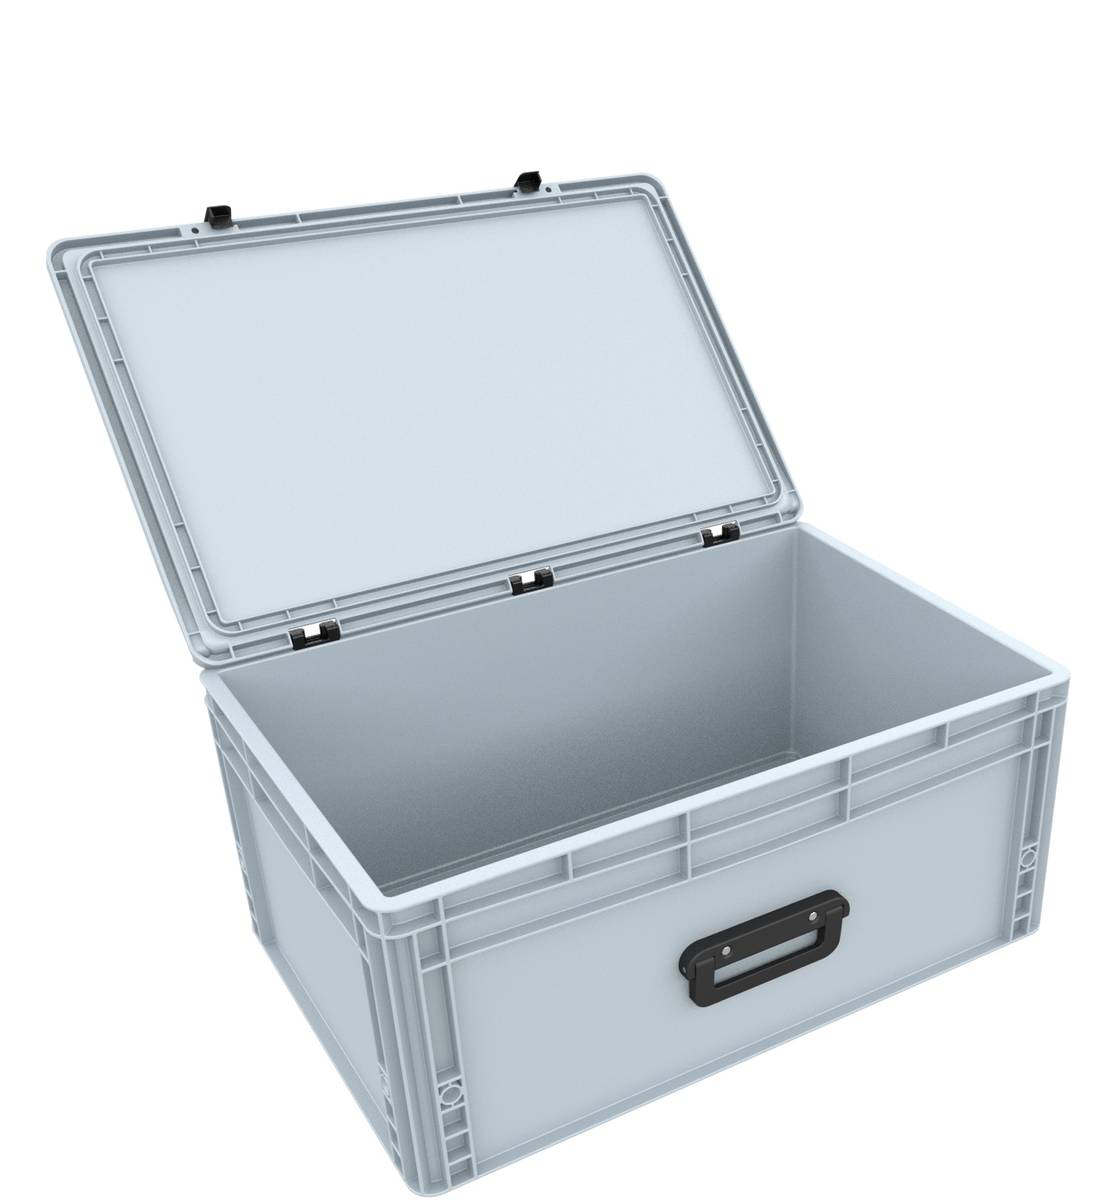 DSEB265G Euro Container Case with handle ED 64/27 1G